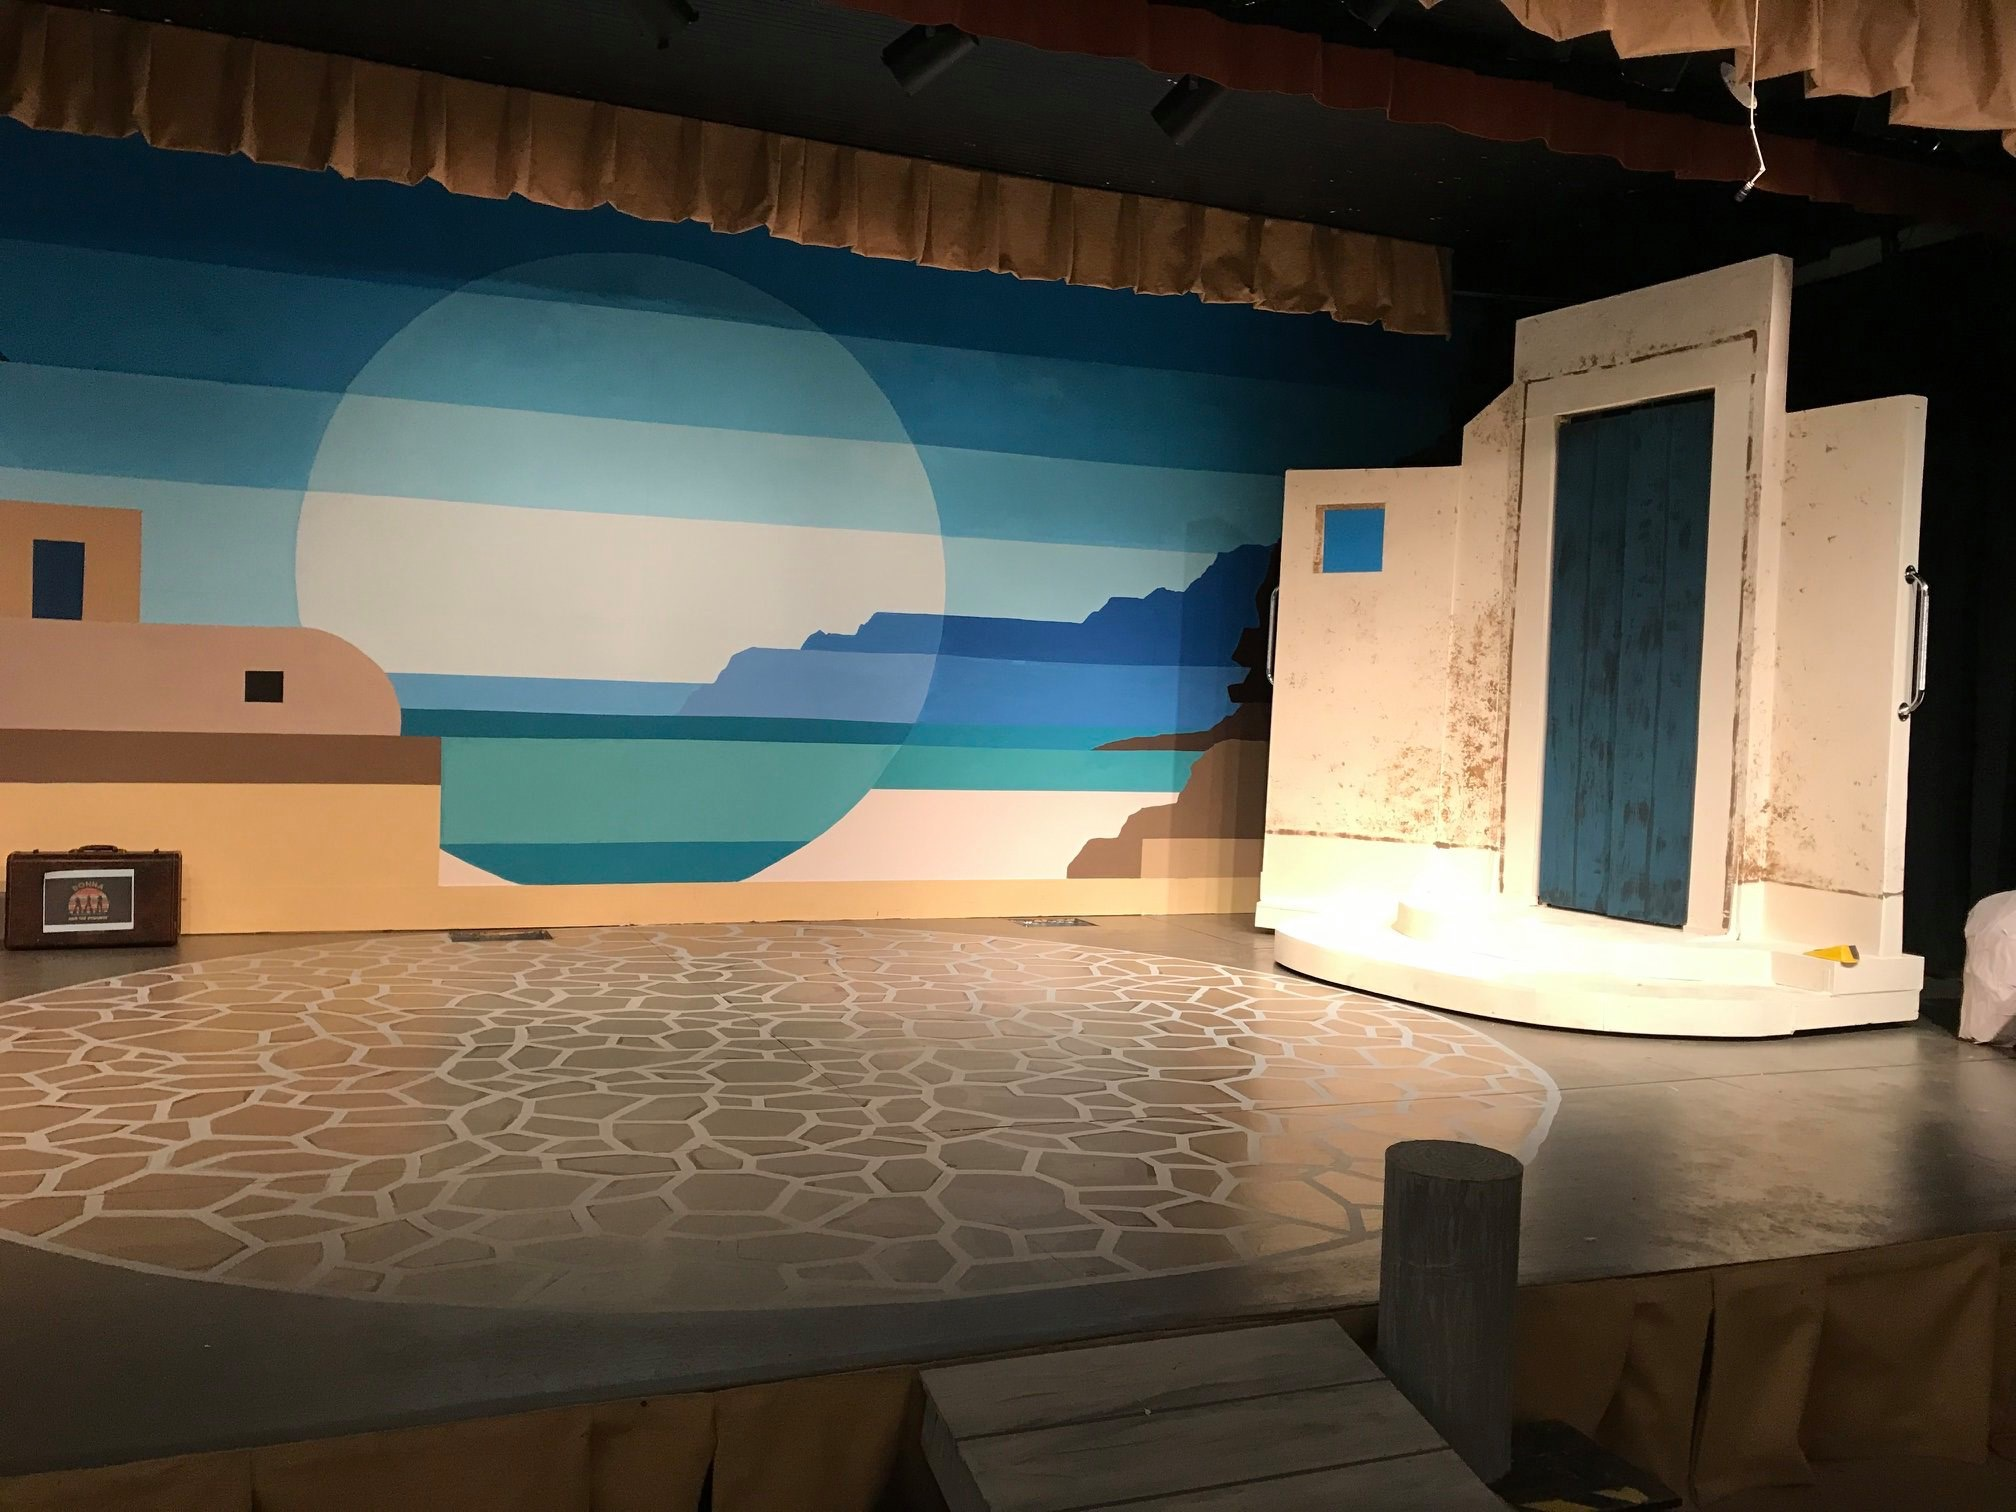 Mamma Mia set piece 2019